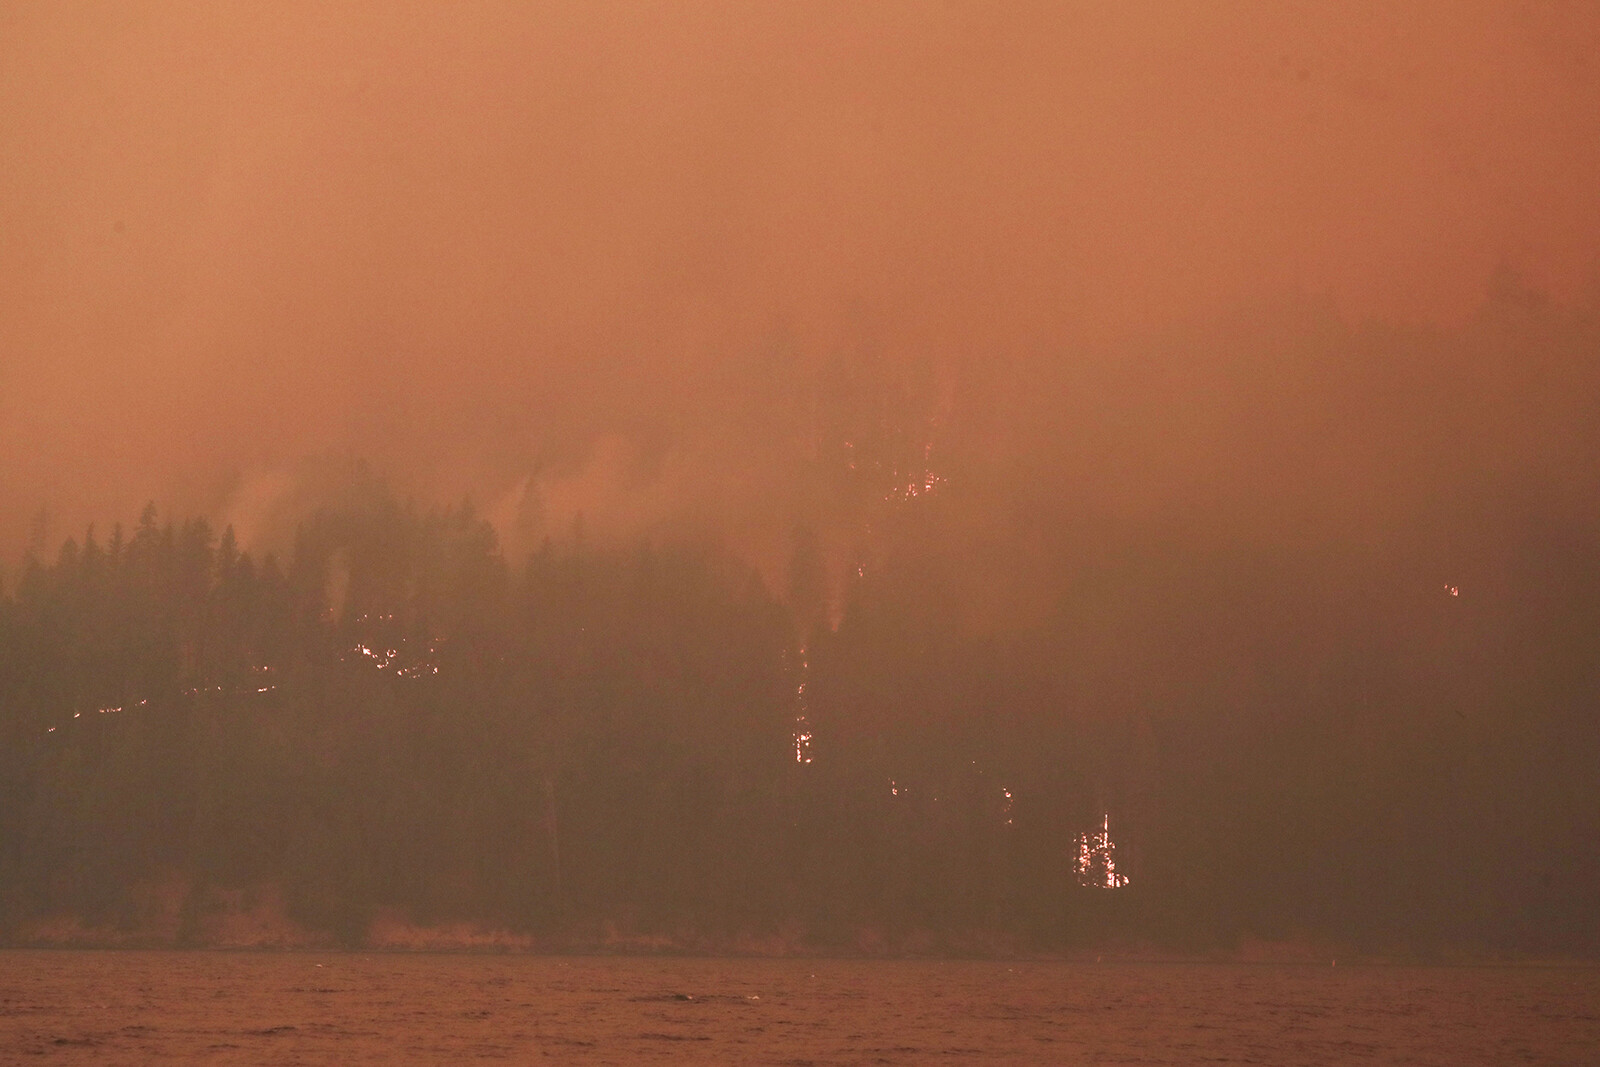 <i>John G. Mabanglo/EPA-EFE/Shutterstock</i><br/>Heavy smoke and flames on the west side of Butte Valley Reservoir from the Dixie fire in Plumas County